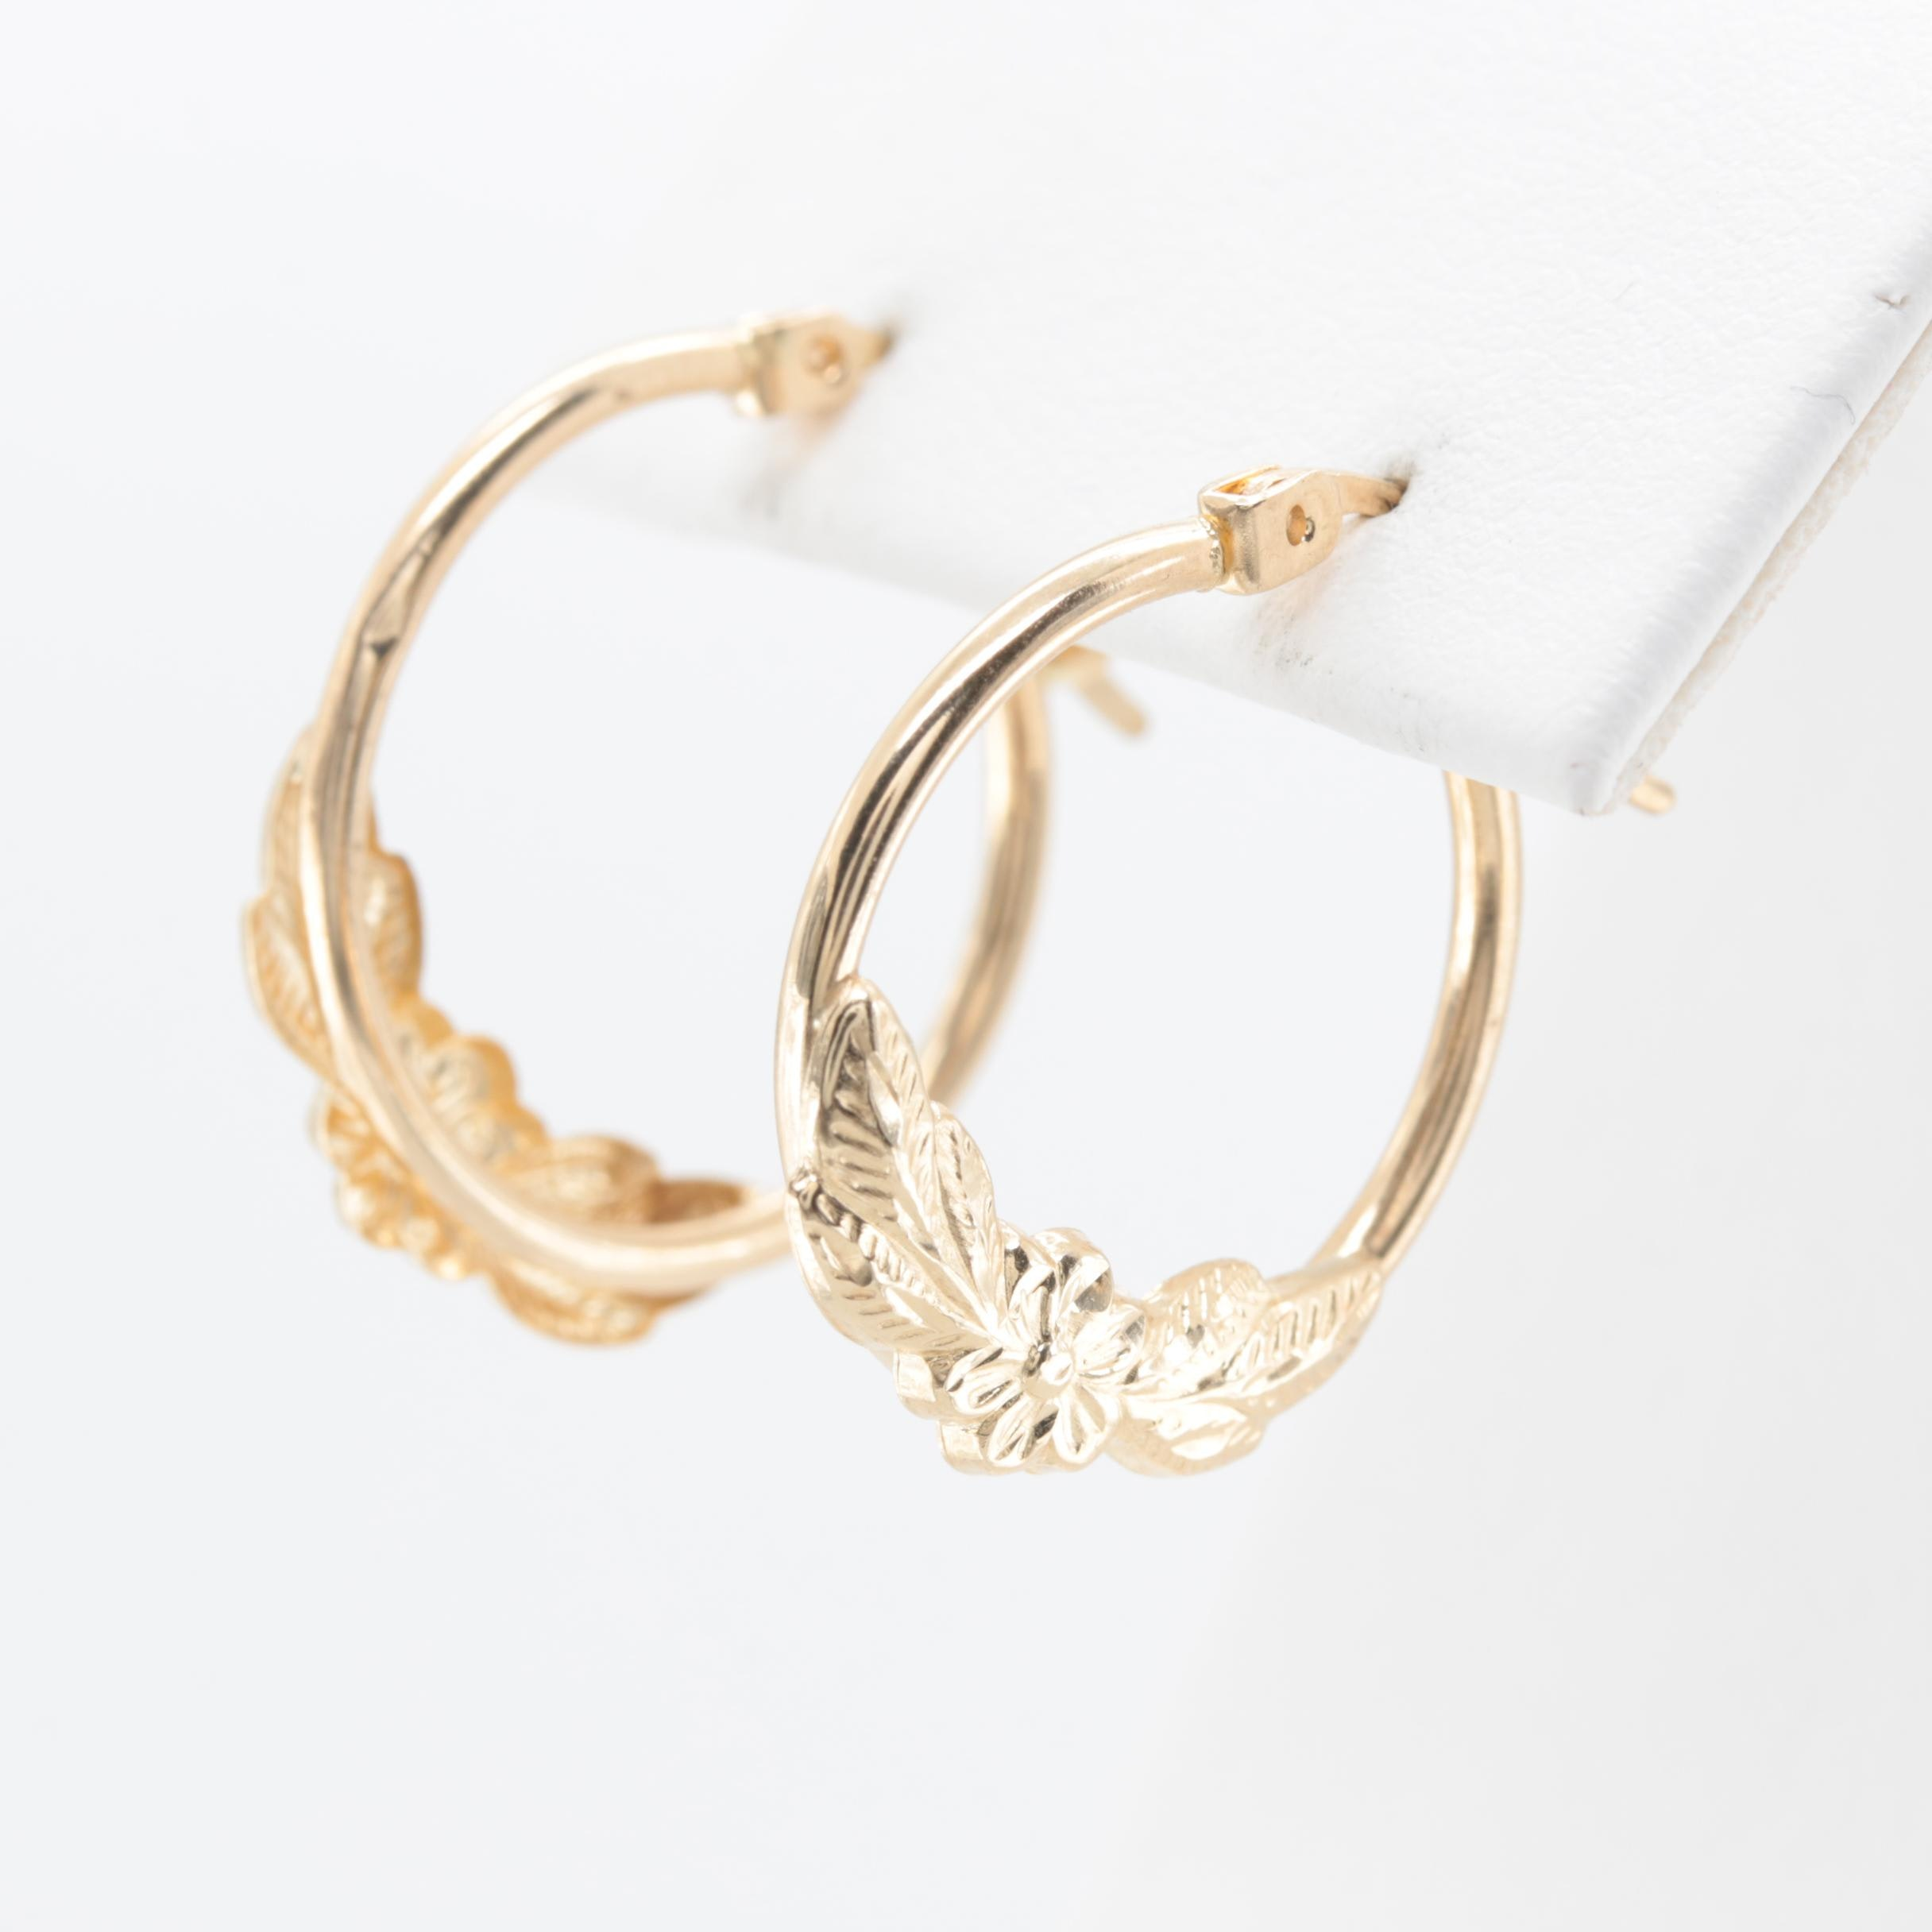 10K Yellow Gold Hoops with a Floral Motif